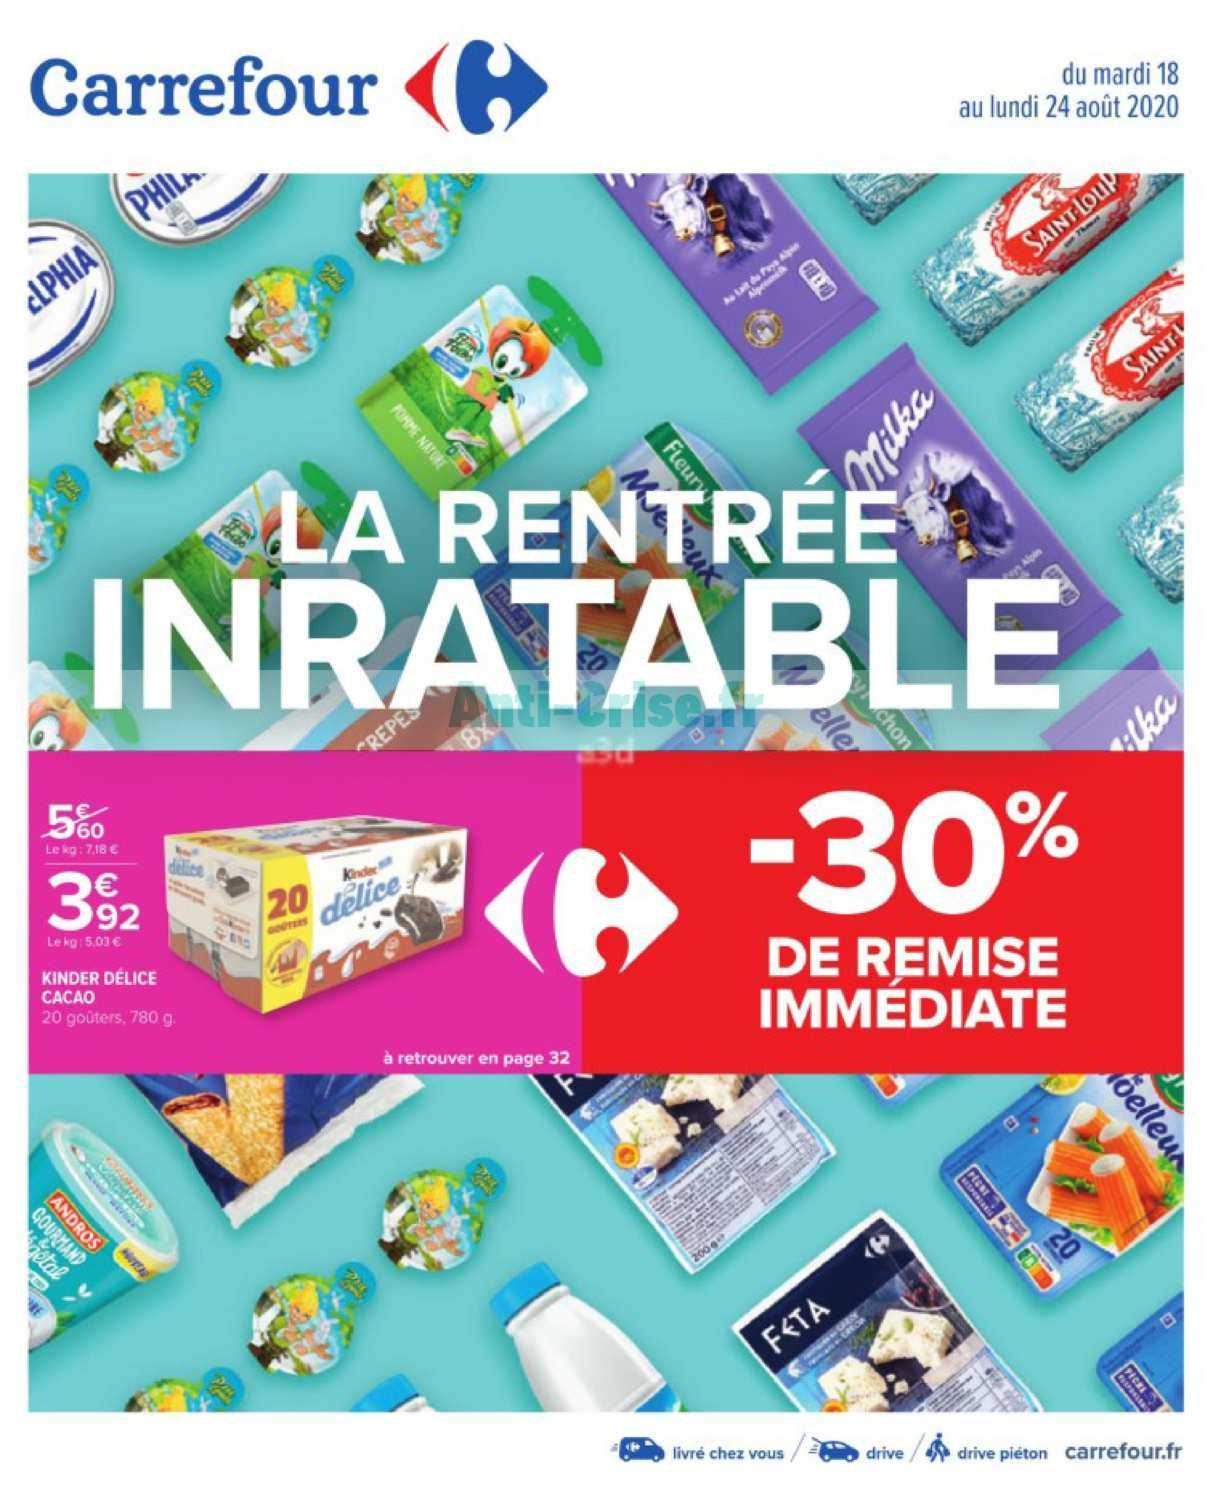 https://media.anti-crise.fr/2020/08/aout2020carrefour1808202024082020S0C0rentree-Inratable-1-243x300.jpg